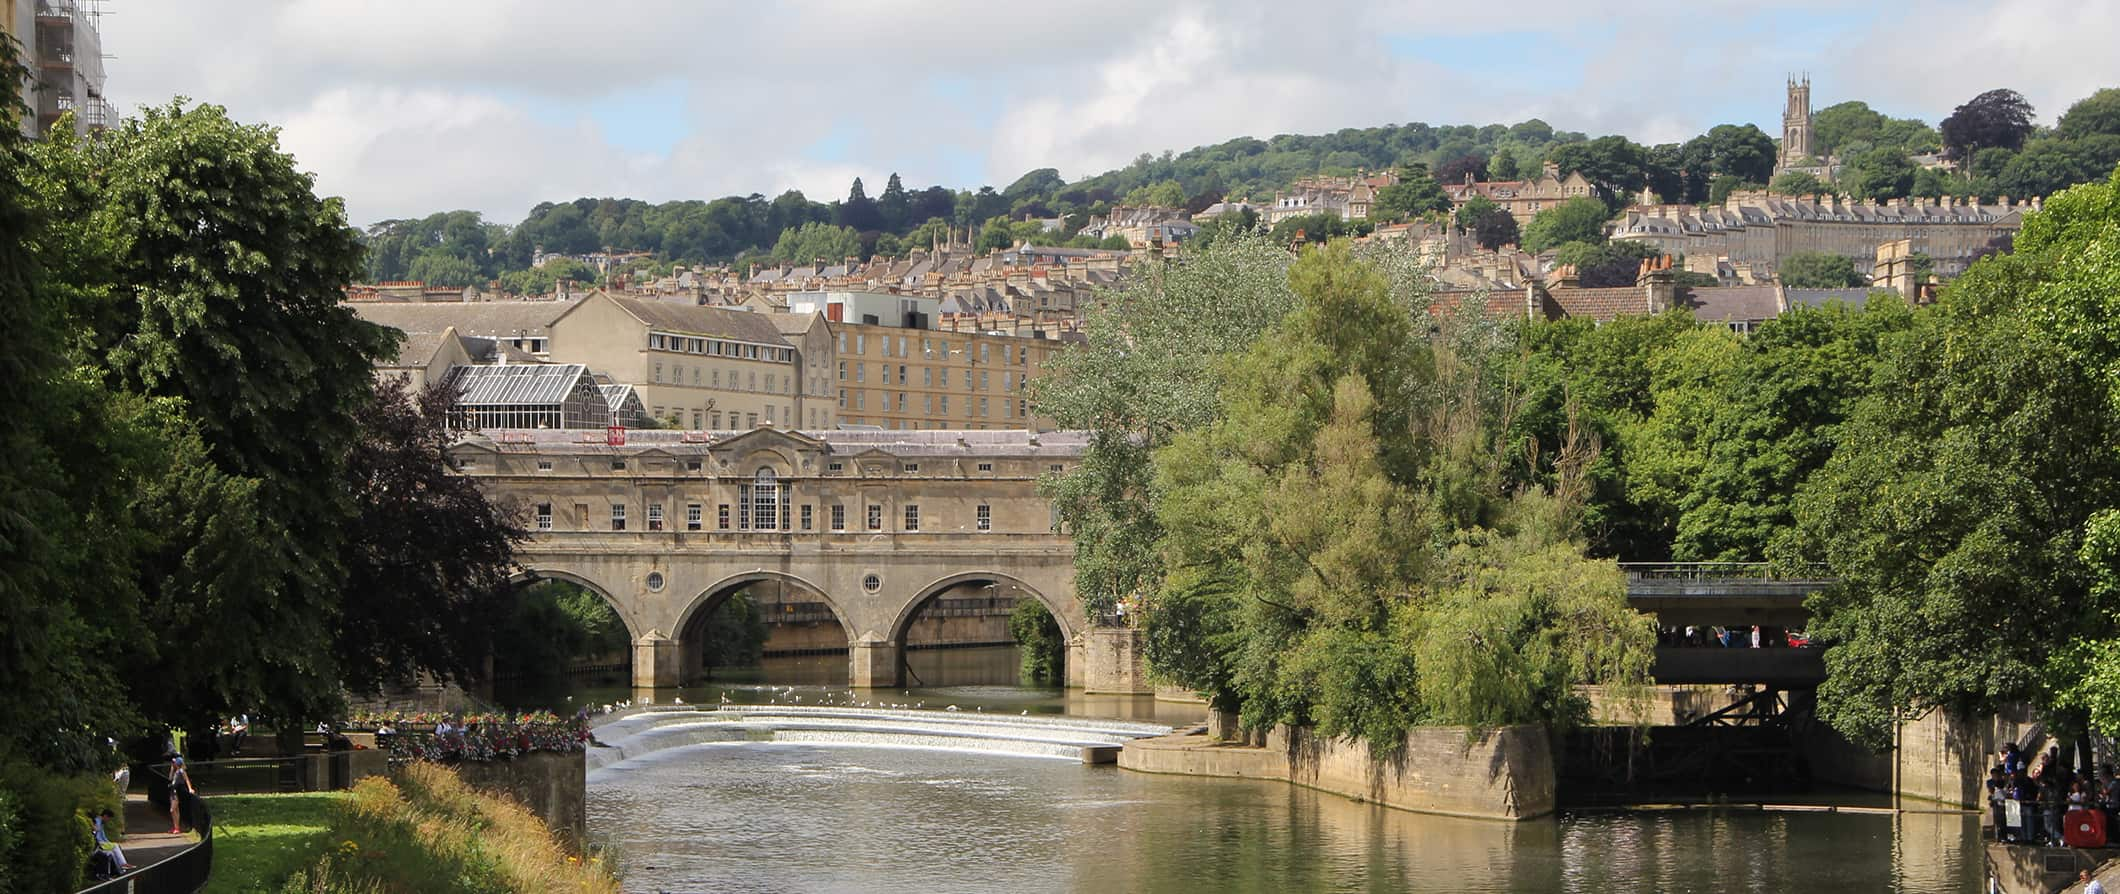 the bridge in Bath, England